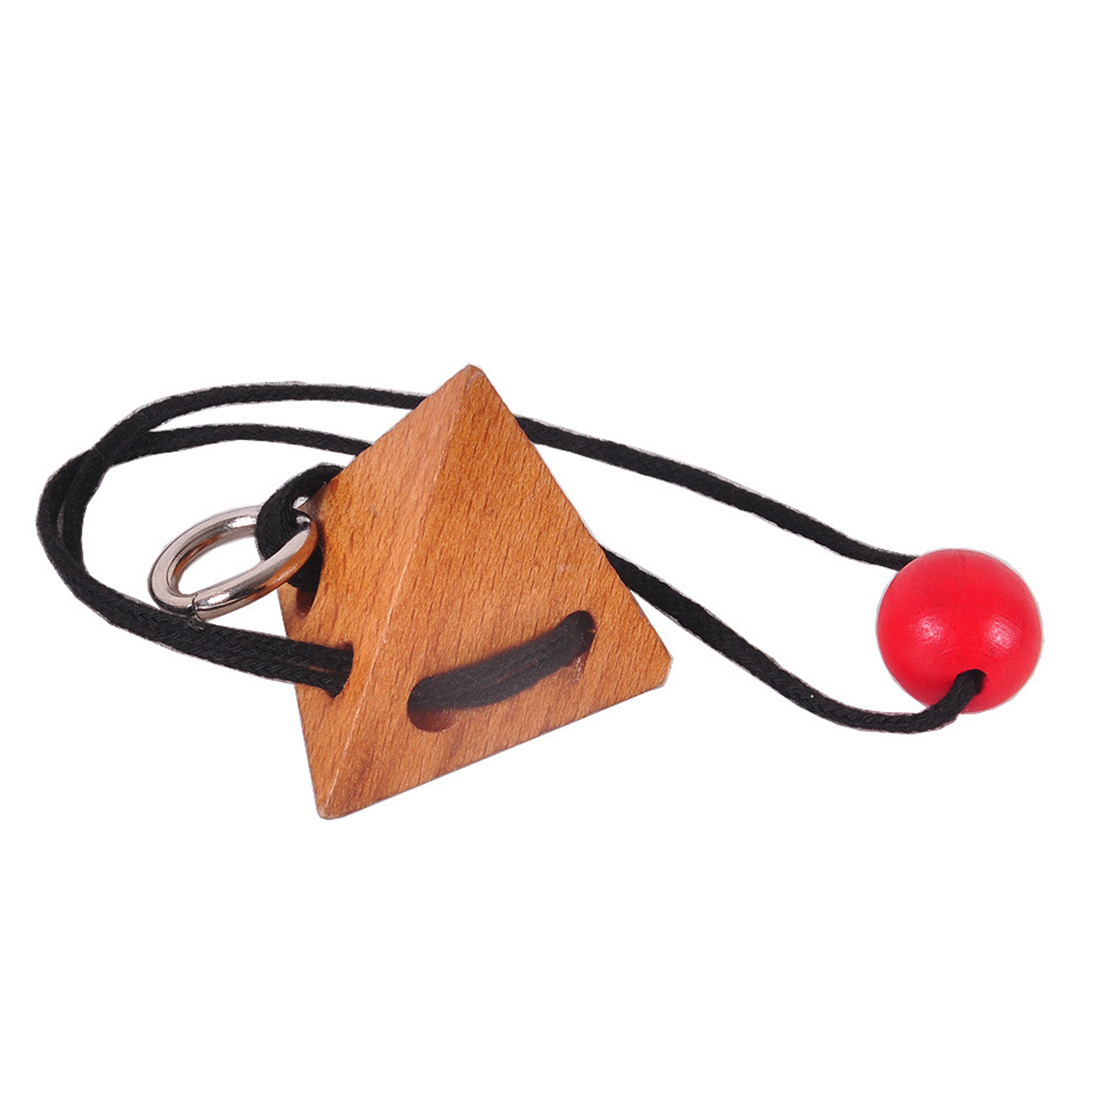 Iq Rope Wooden Puzzle Logic Brain Teaser String Puzzles